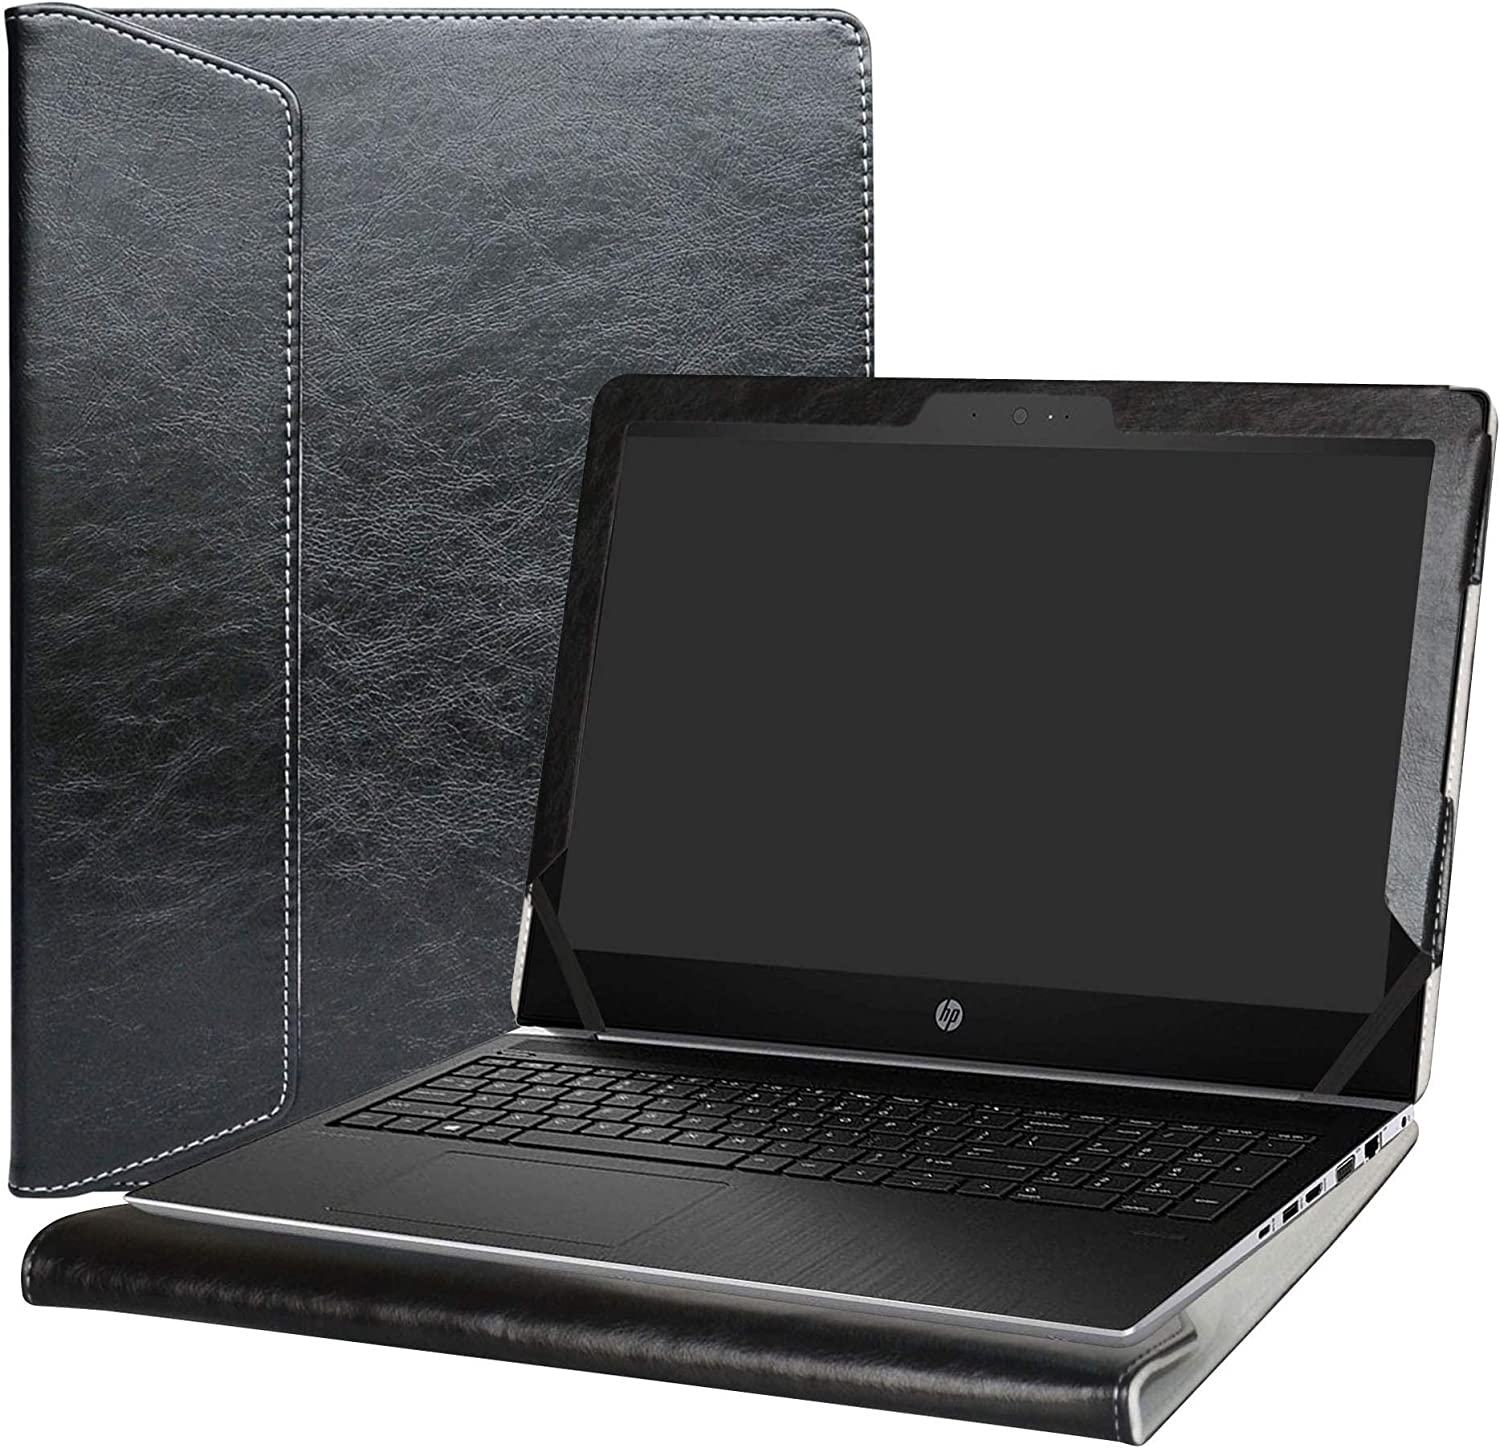 "Alapmk Protective Case Cover for 13.3"" HP ProBook 430 G5 G3 G2 G1 Series Laptop(Warning:Not fit HP ProBook 430 G4),Black"